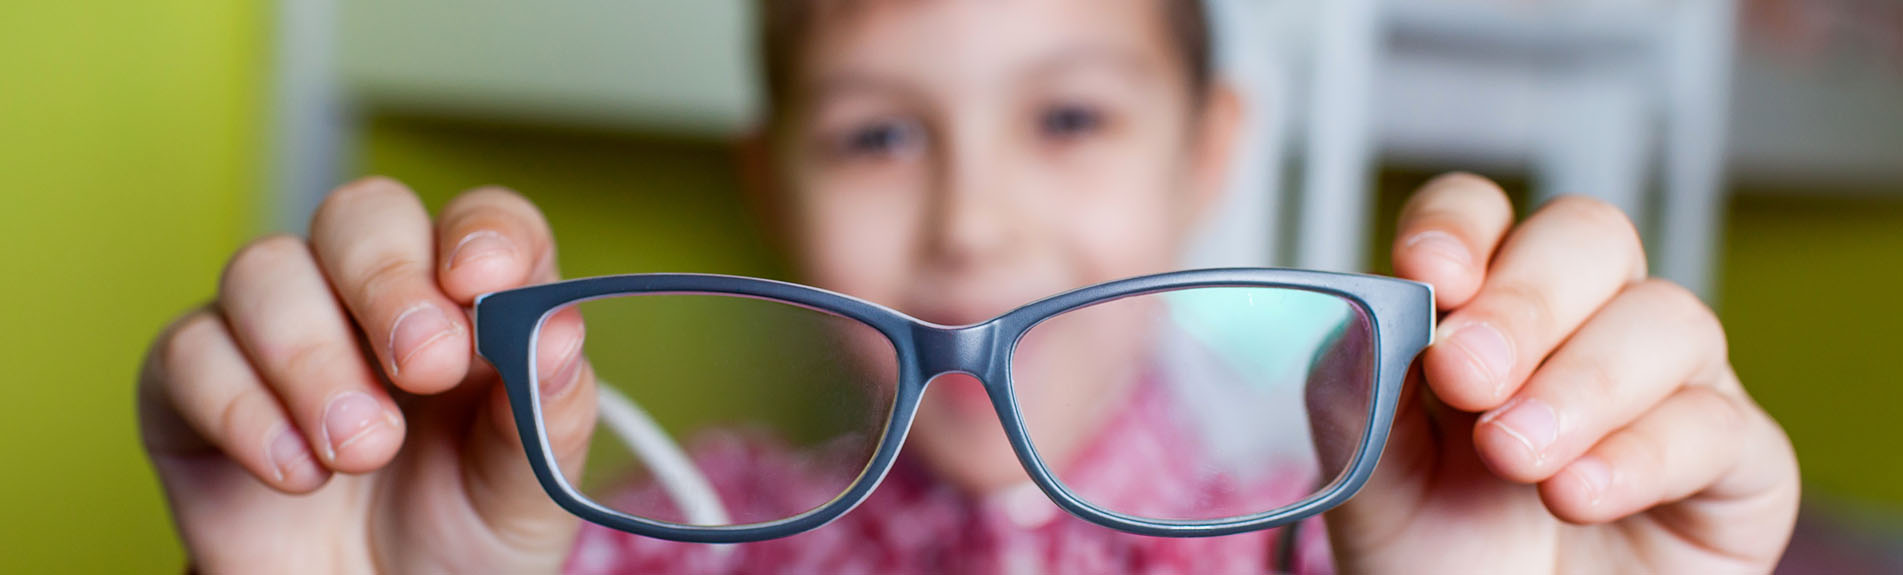 Myopia or Shortsightedness Causes & Cure